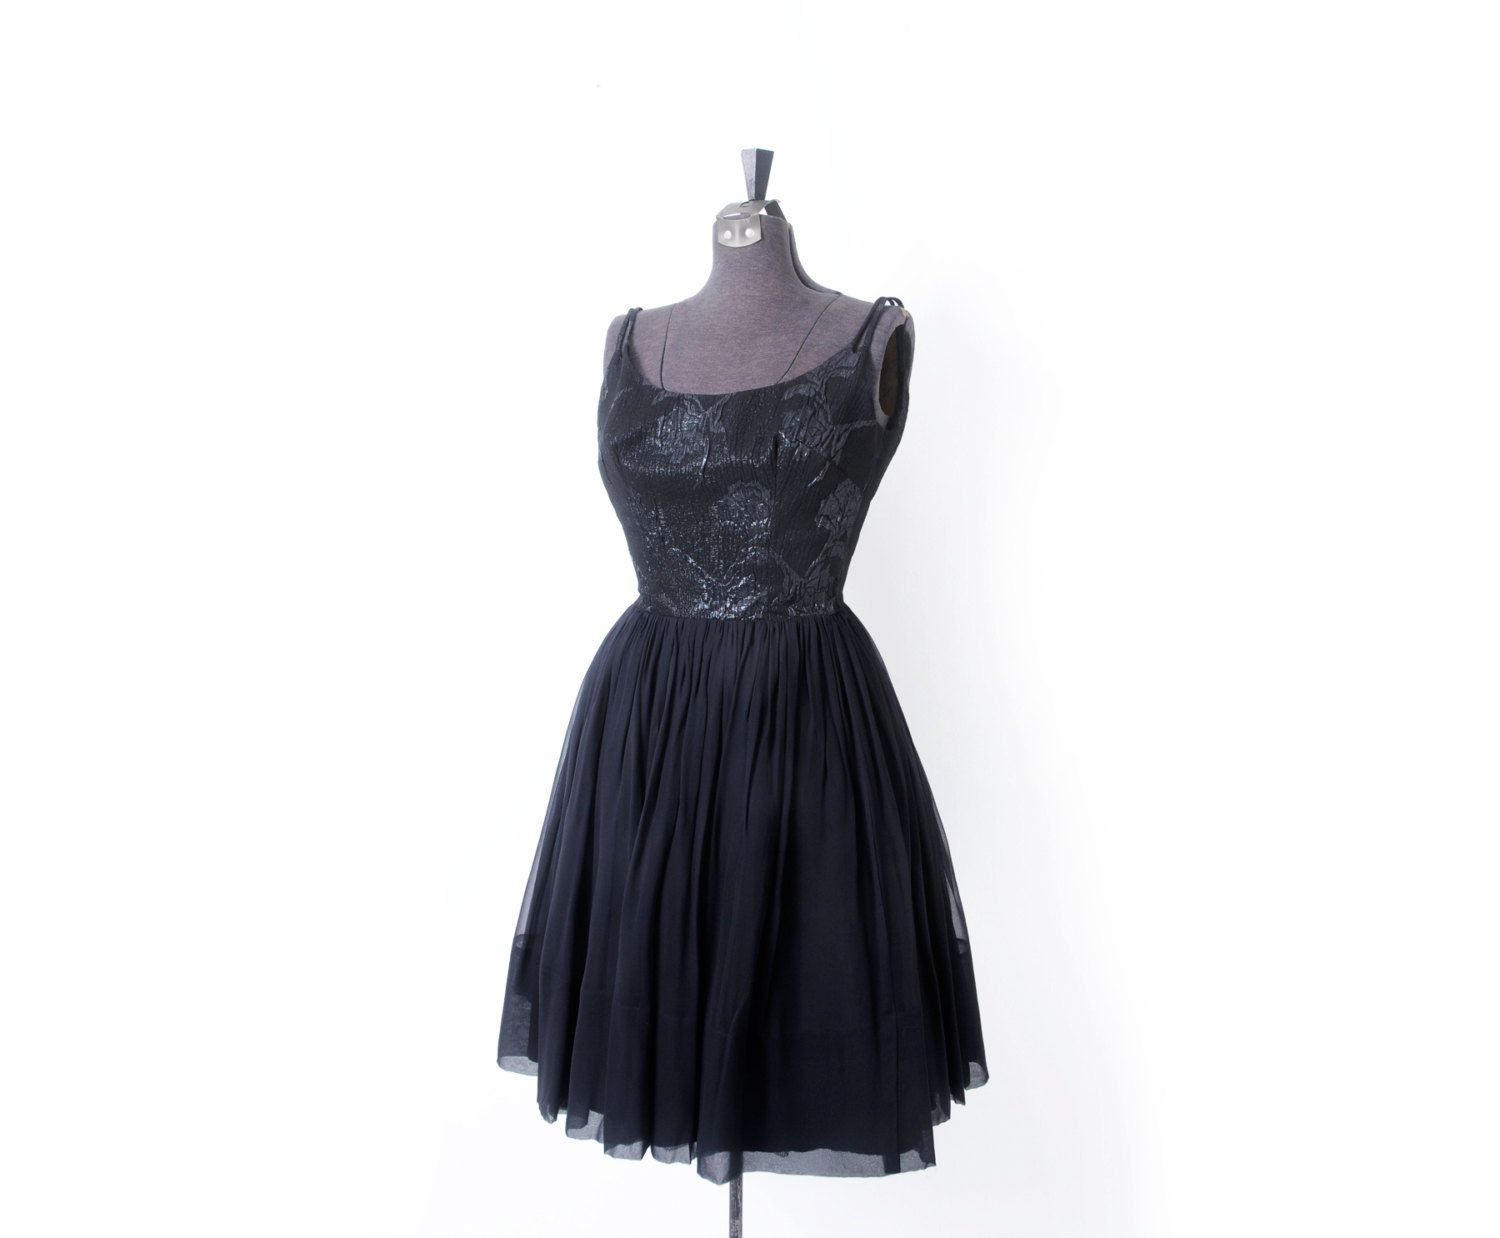 S formal black dress with brocade bodice and full chiffon skirt